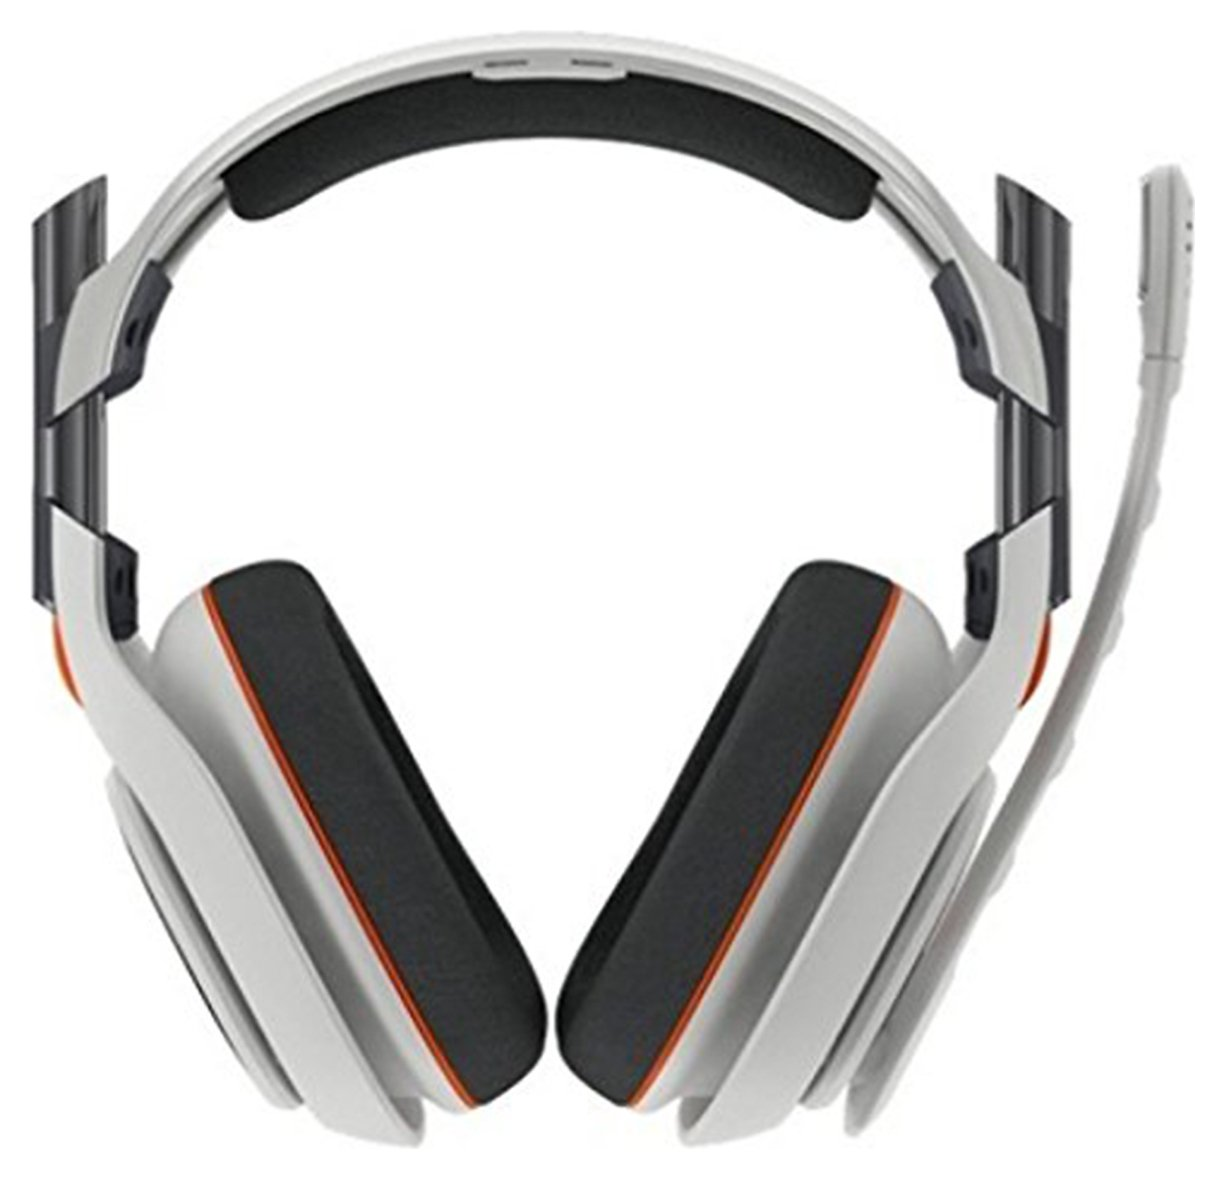 Image of Astro A40 Grey Gaming Headset for PC/ PS3/ PS4